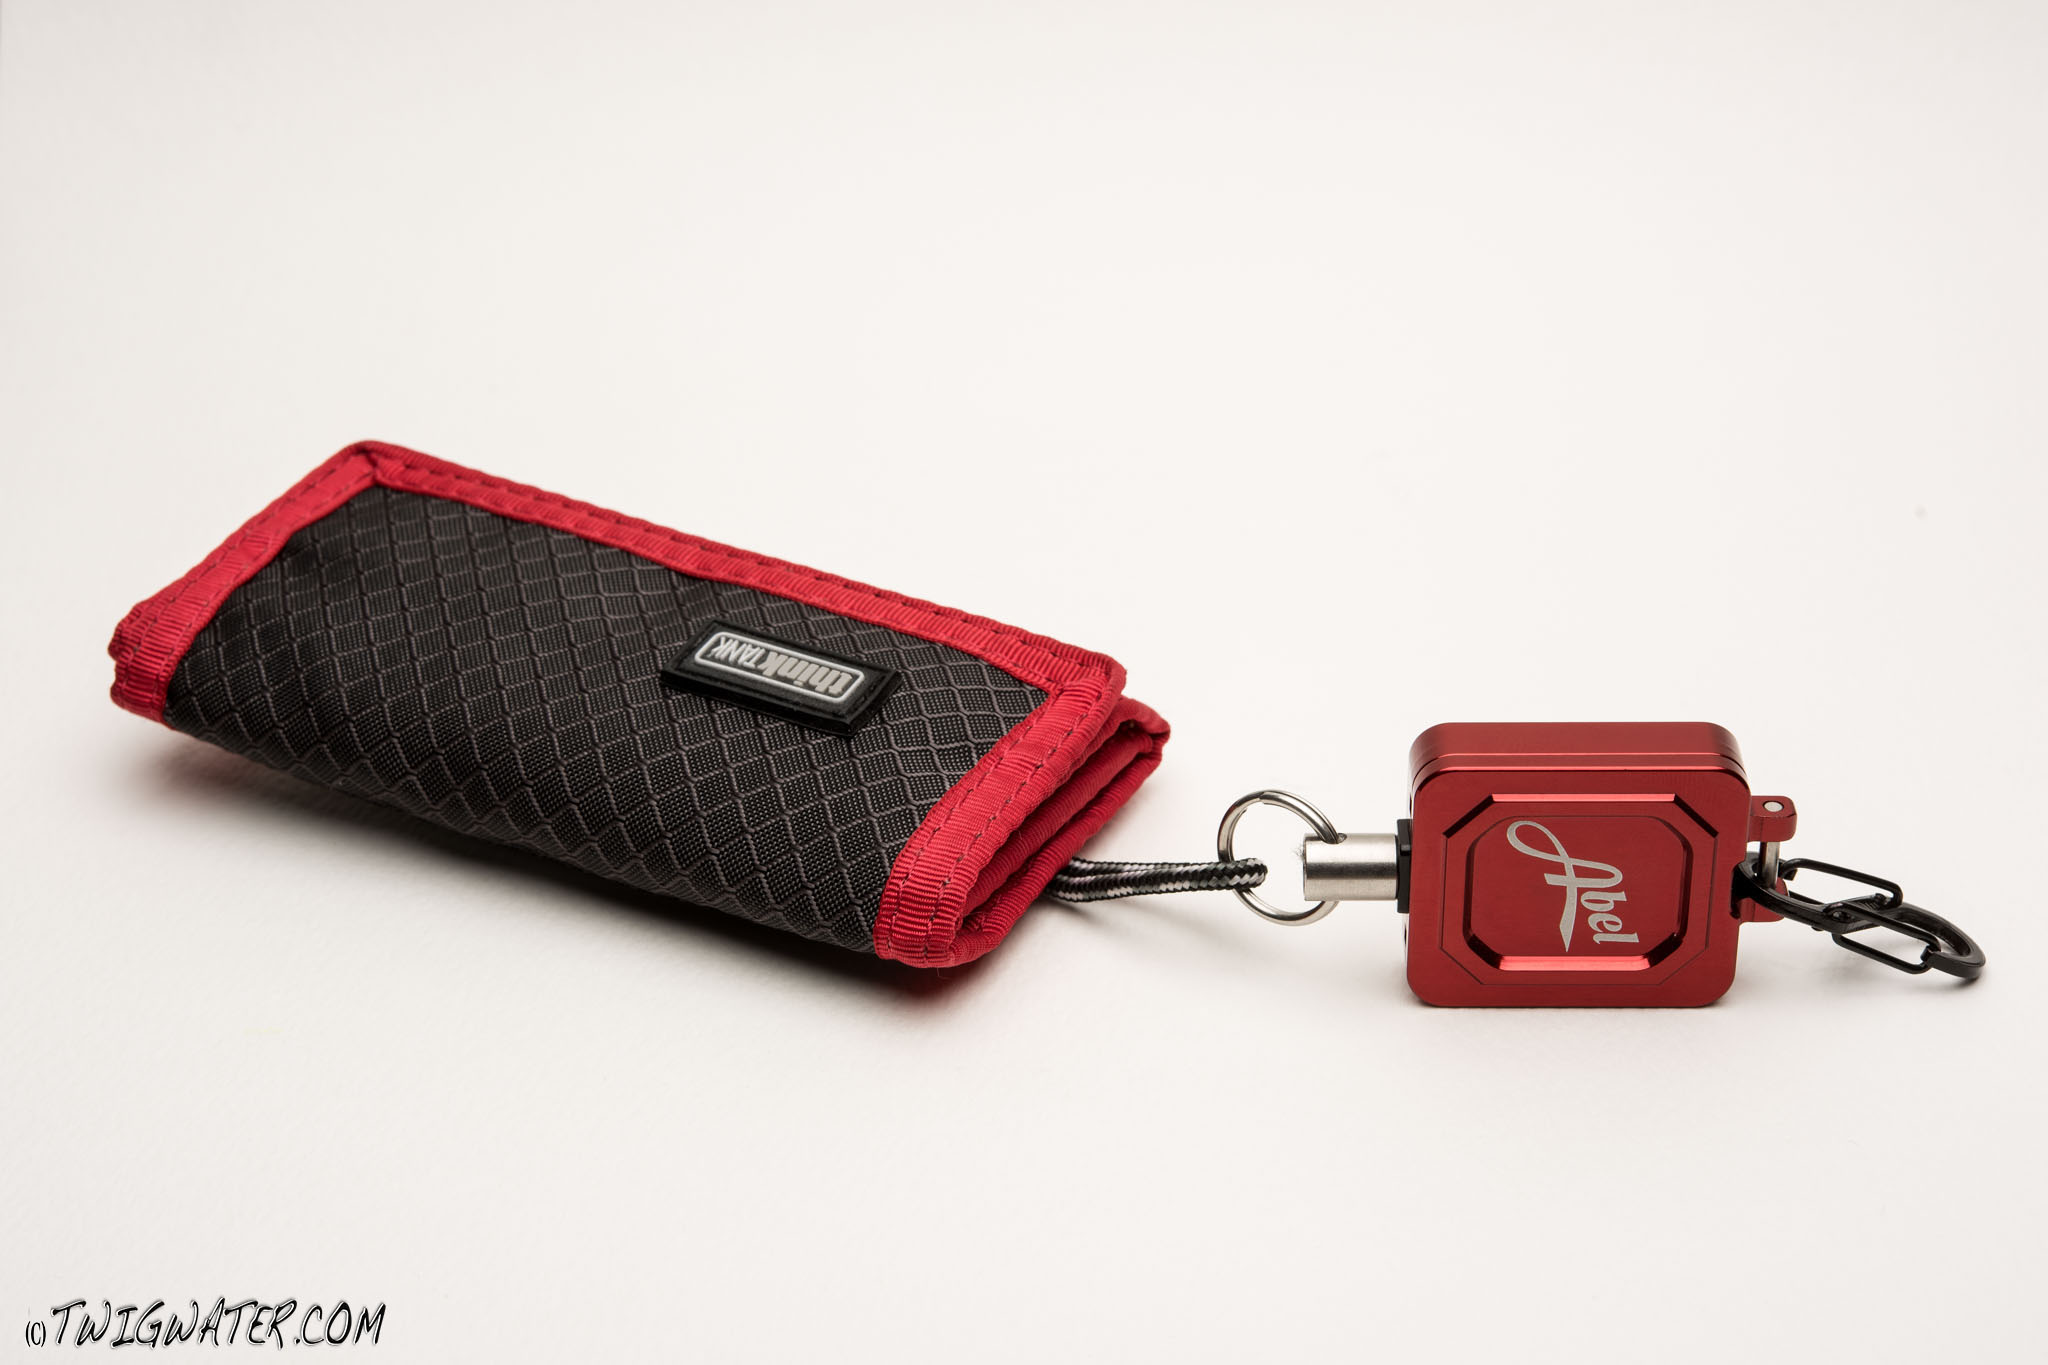 Abel Zinger used with Thinktank memory card wallet.